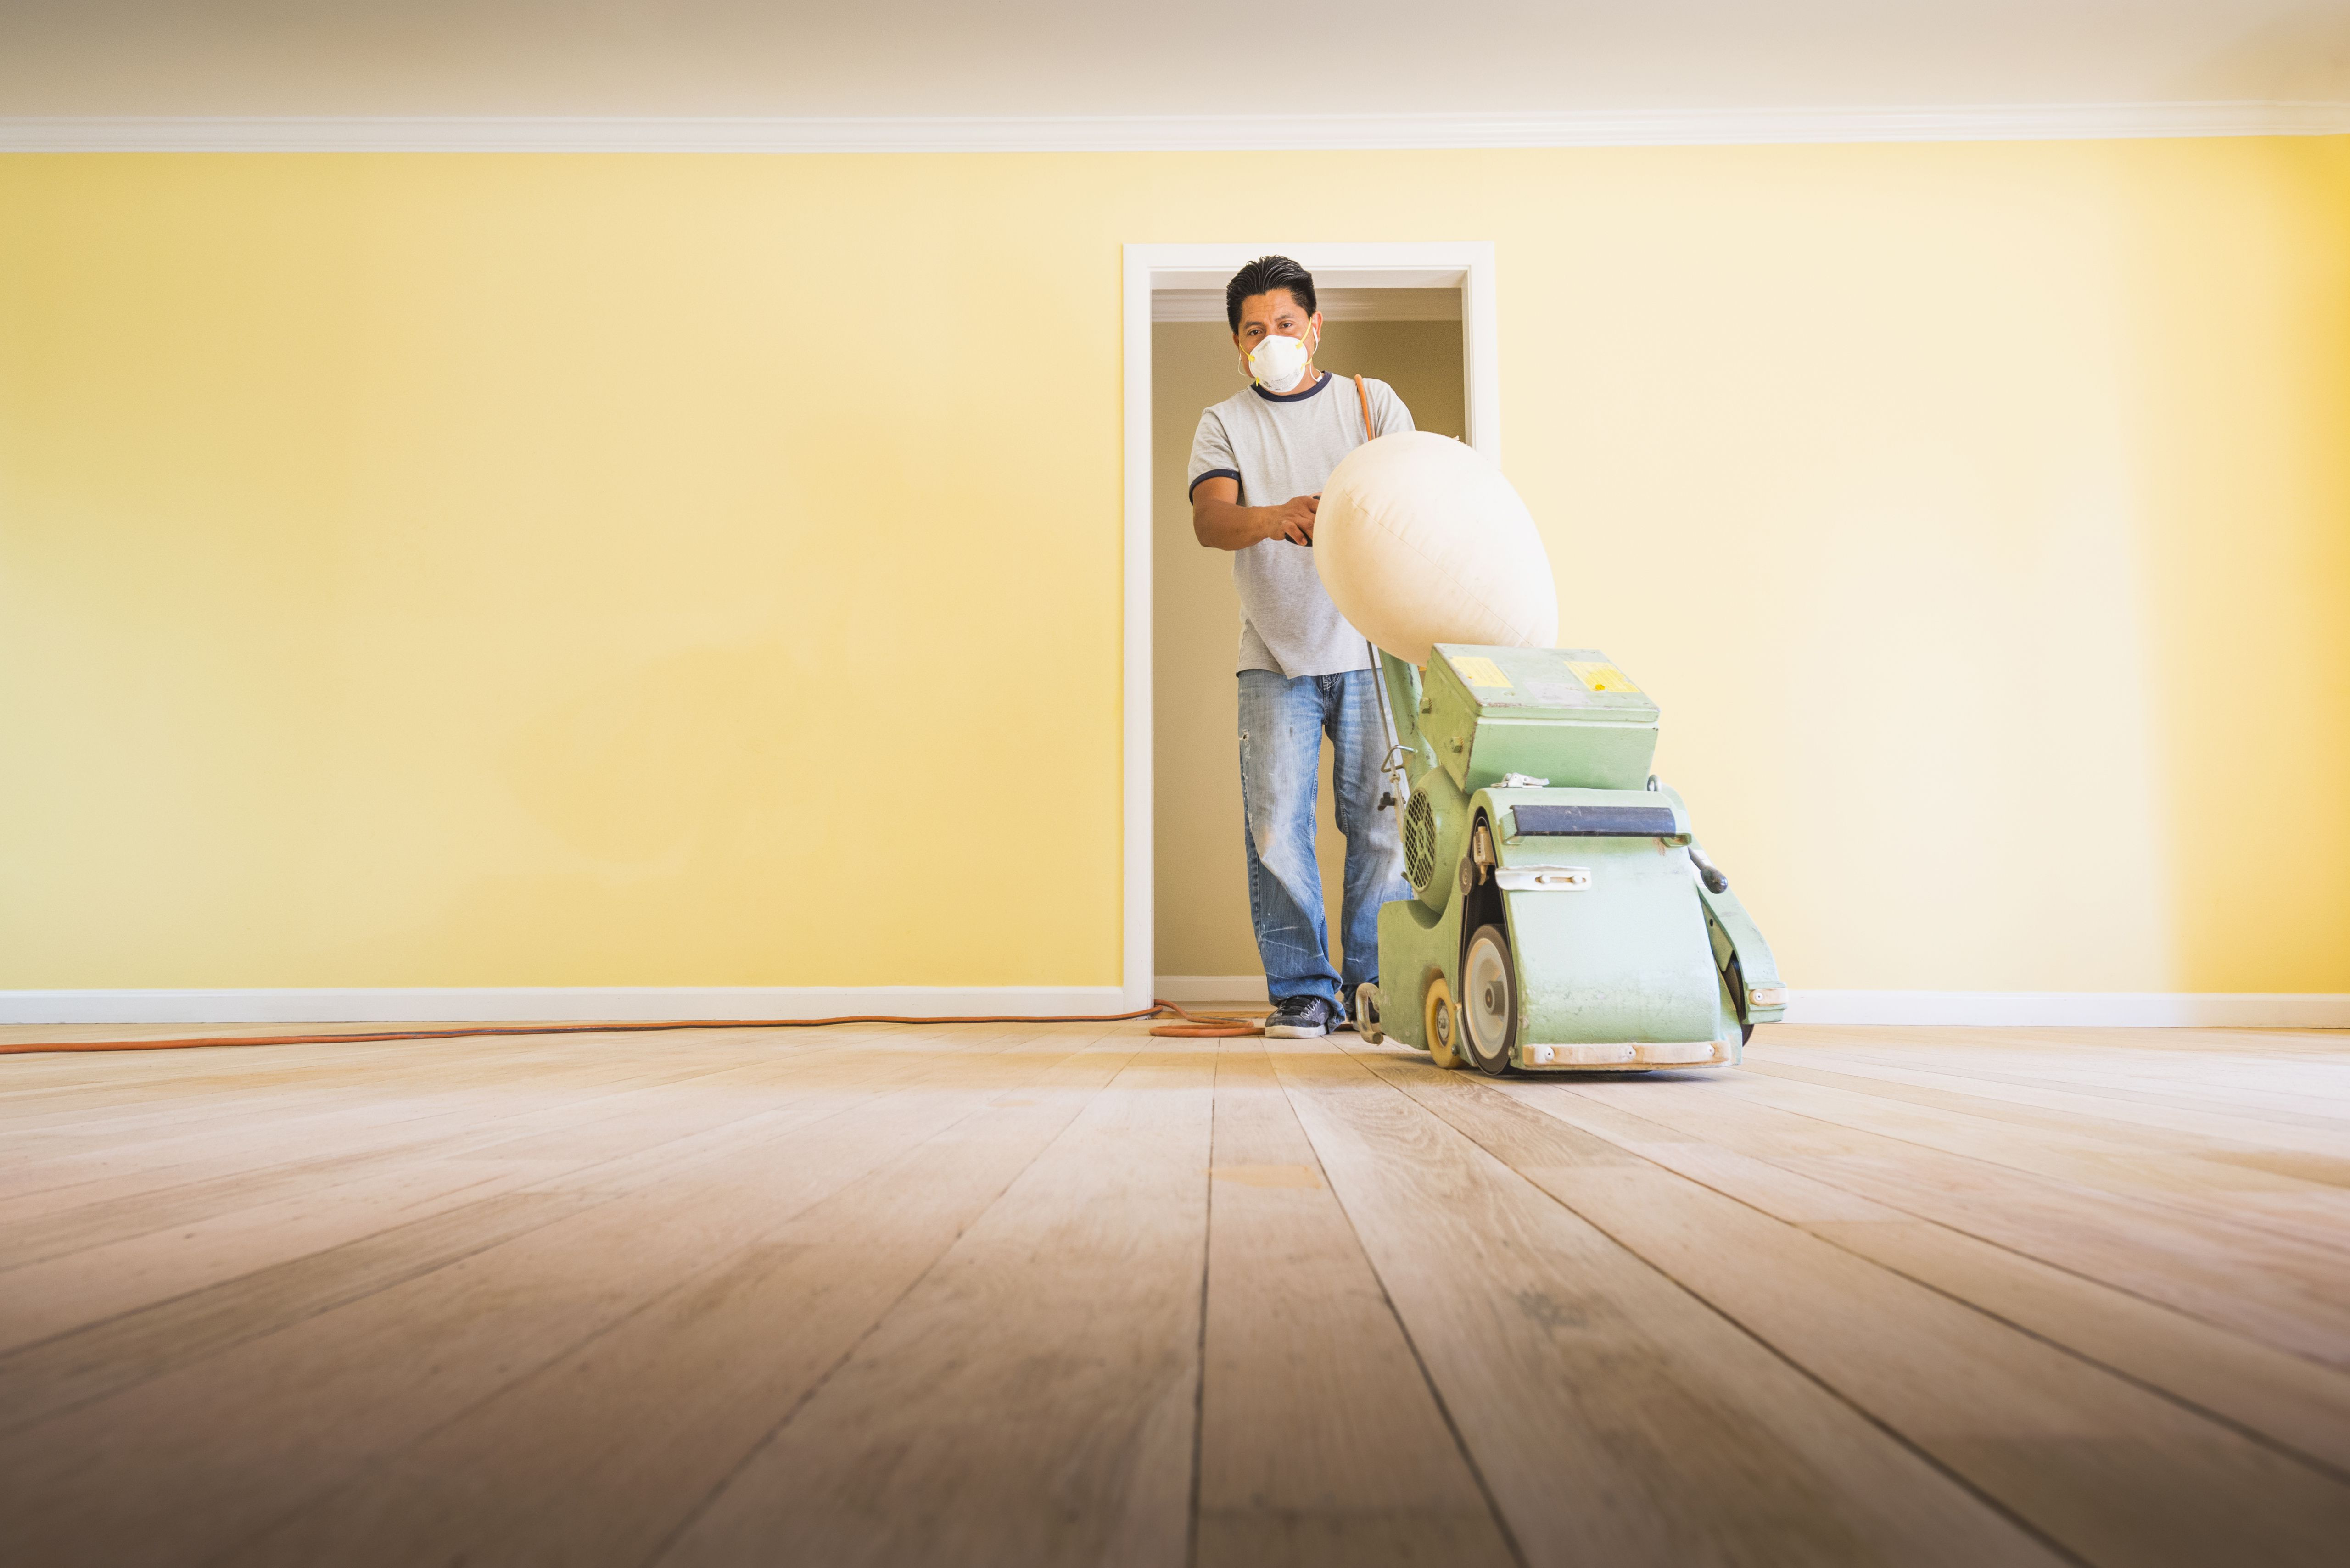 cost to pull up carpet and refinish hardwood floors of should you paint walls or refinish floors first in floorsandingafterpainting 5a8f08dfae9ab80037d9d878